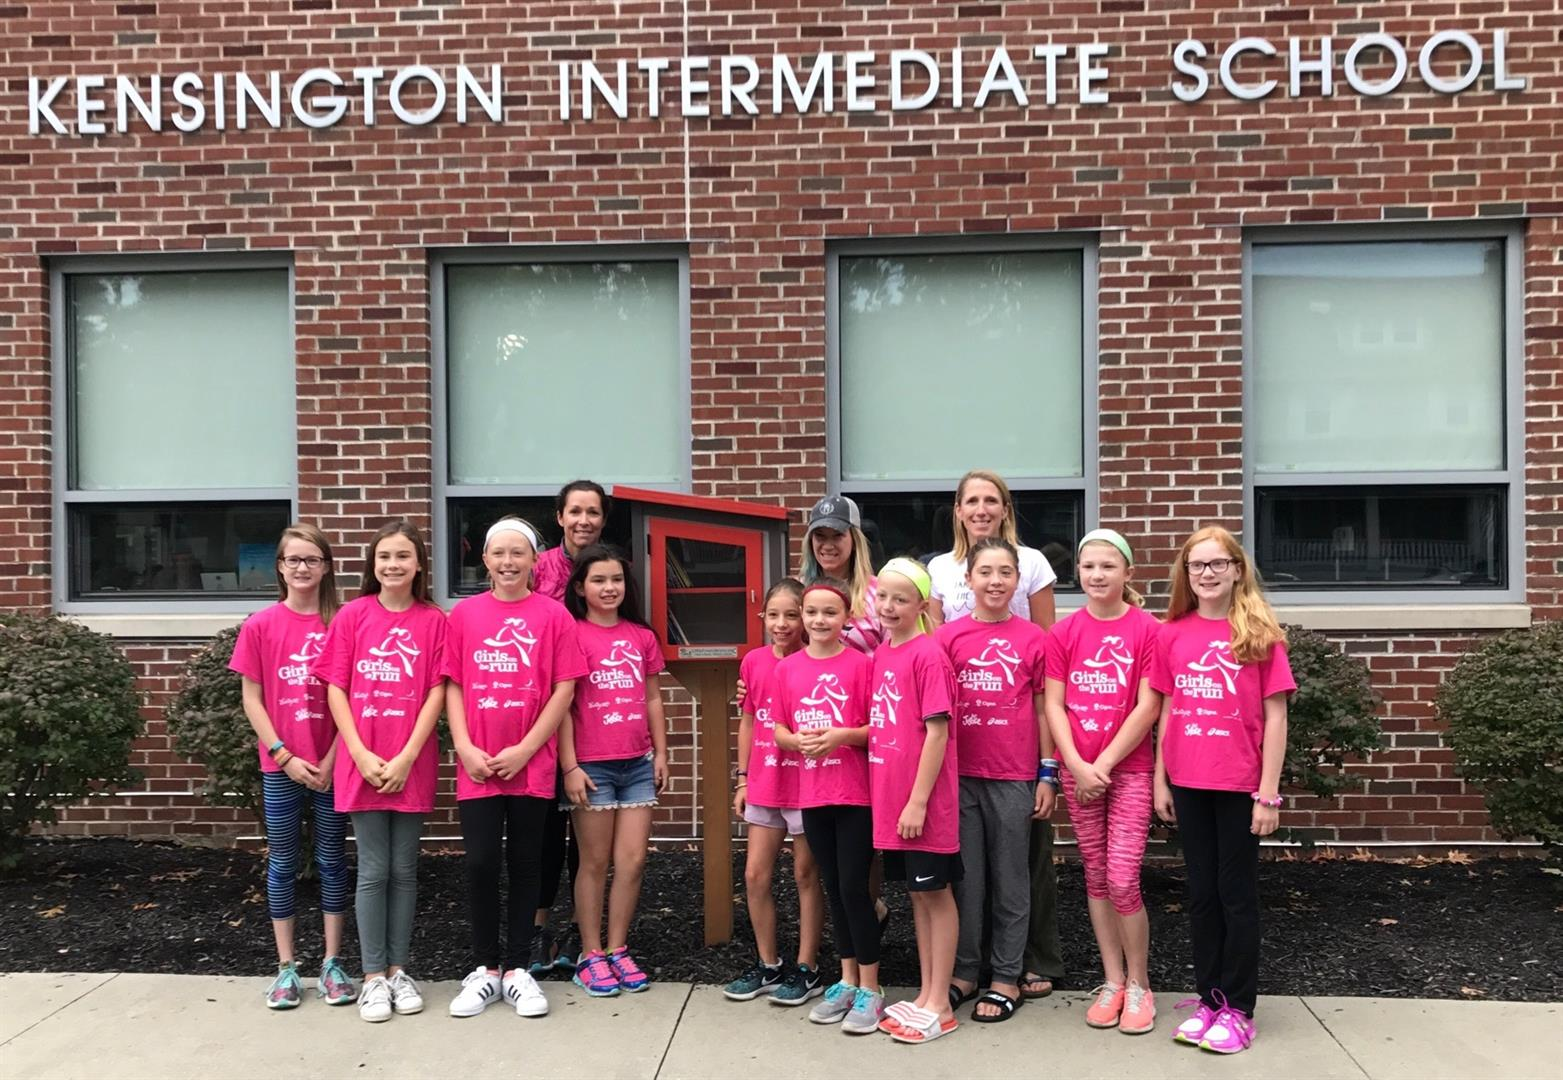 The young ladies from Girls On The Run who inspired the Free Little Library at Kensington Intermediate School.